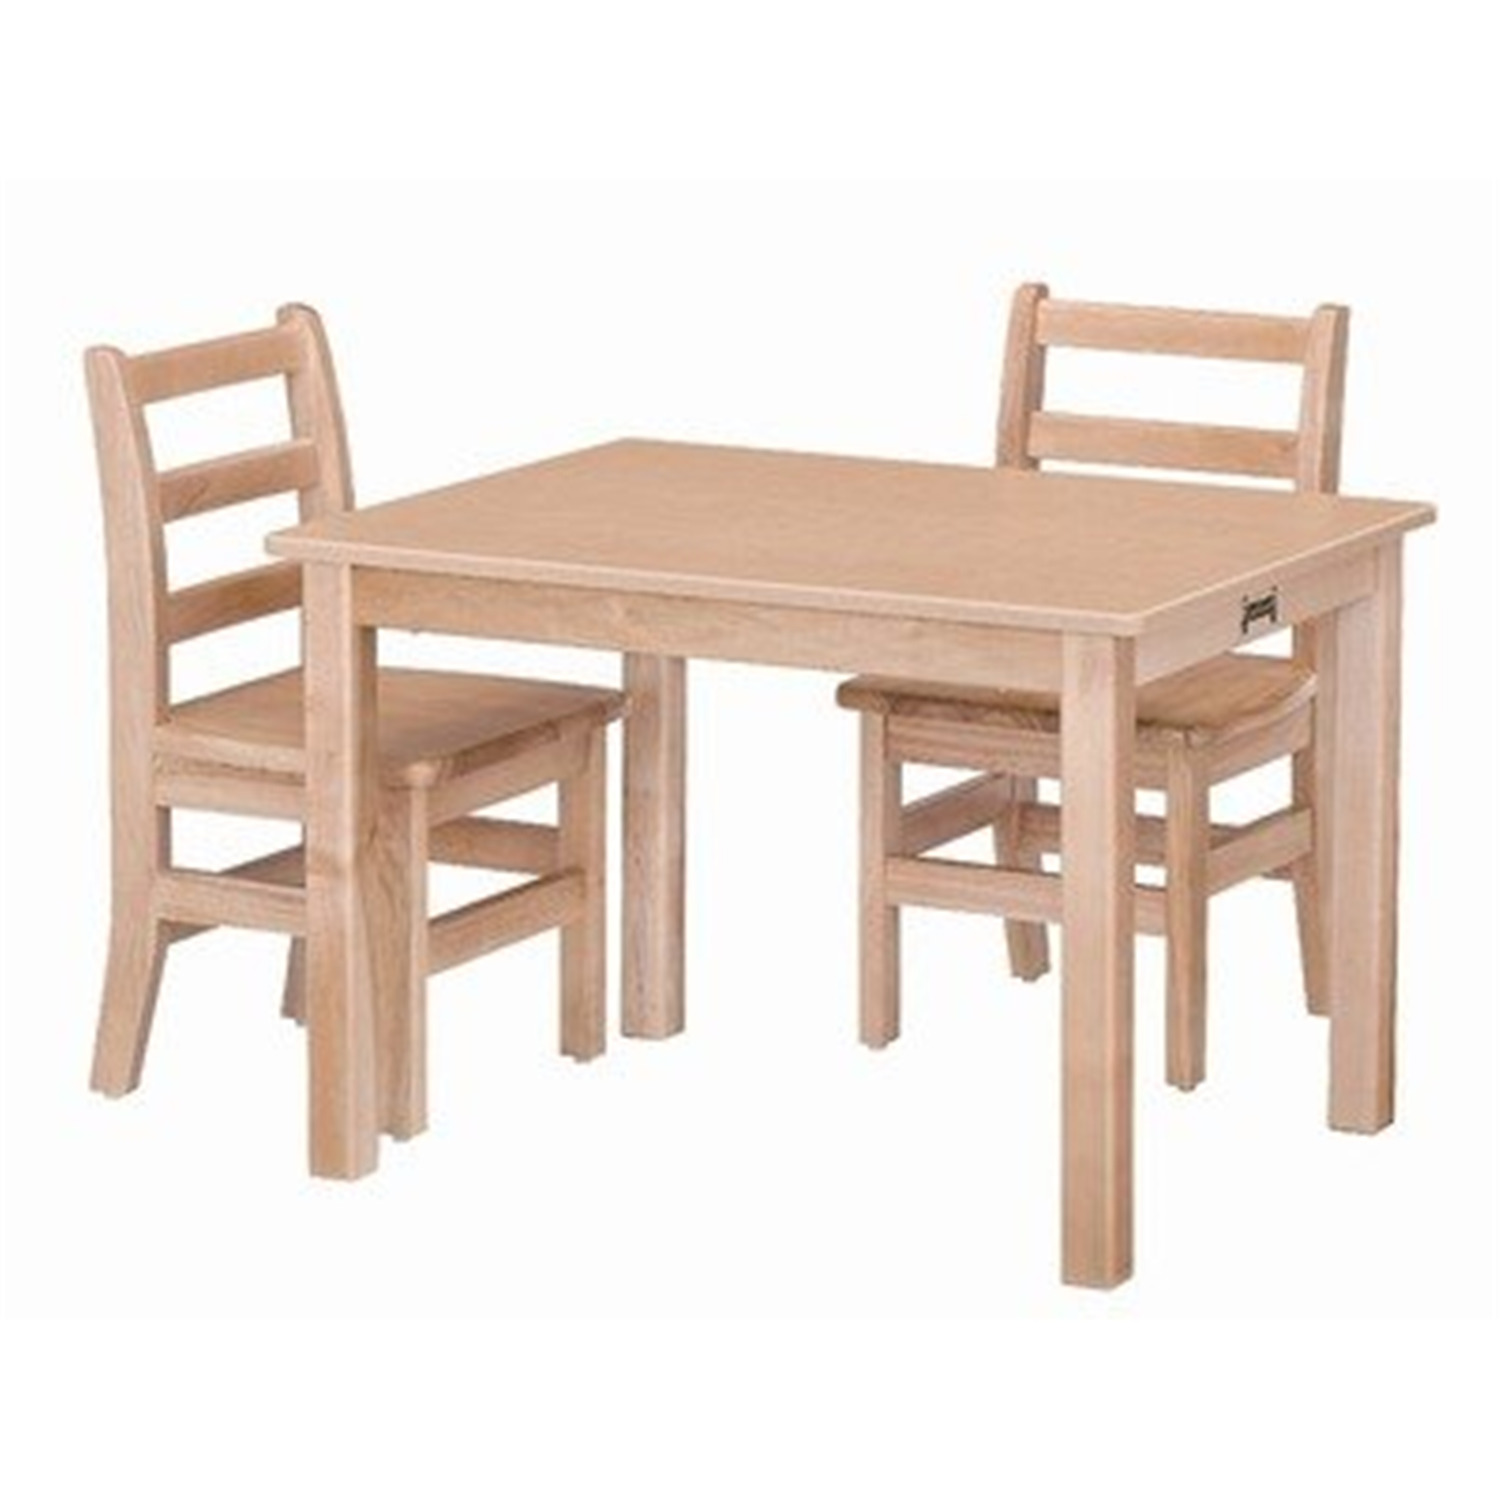 Jonti-craft Multi-purpose Rectangle Table - [56612JC]